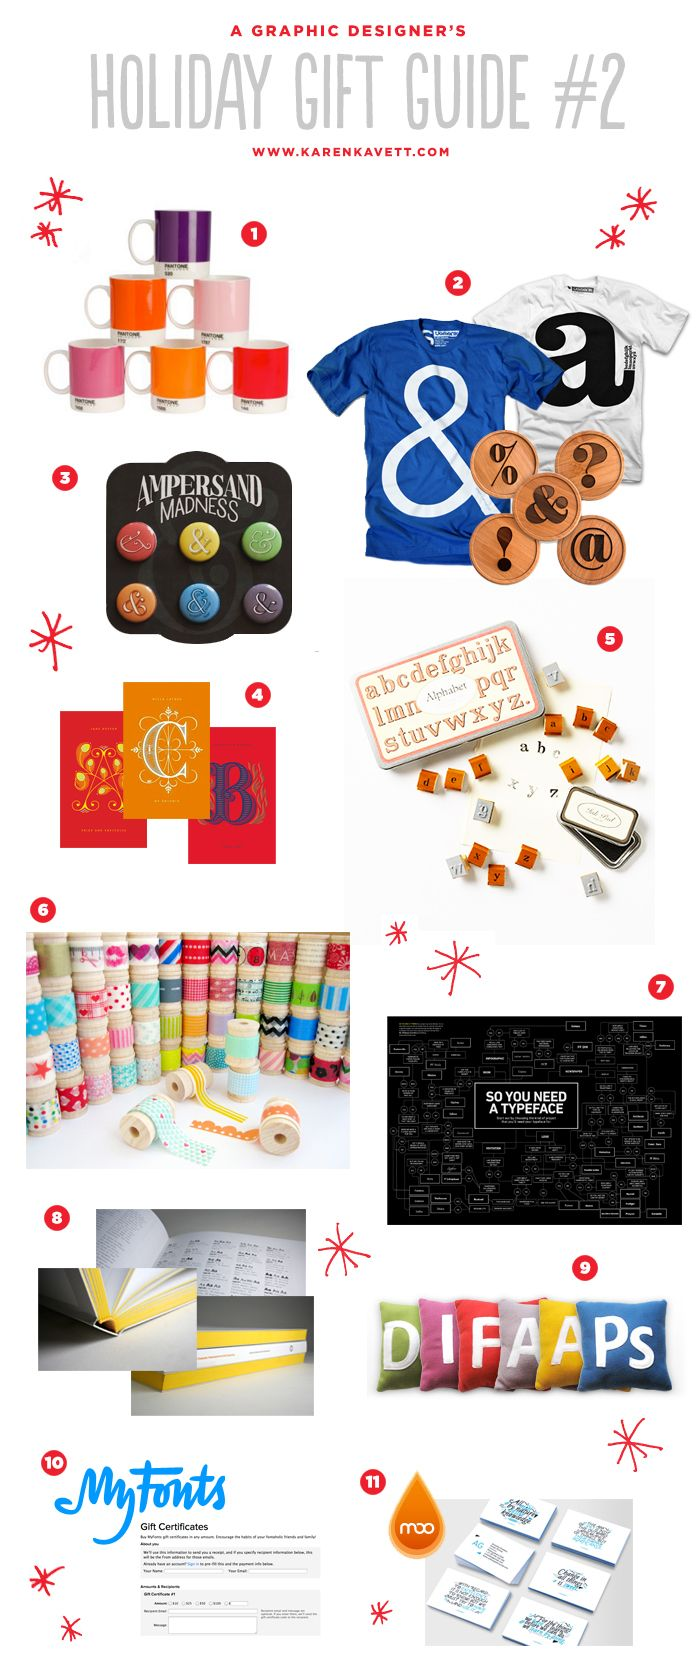 Pin By Karen Kavett On 2013 Projects Holiday Gift Guide Holiday